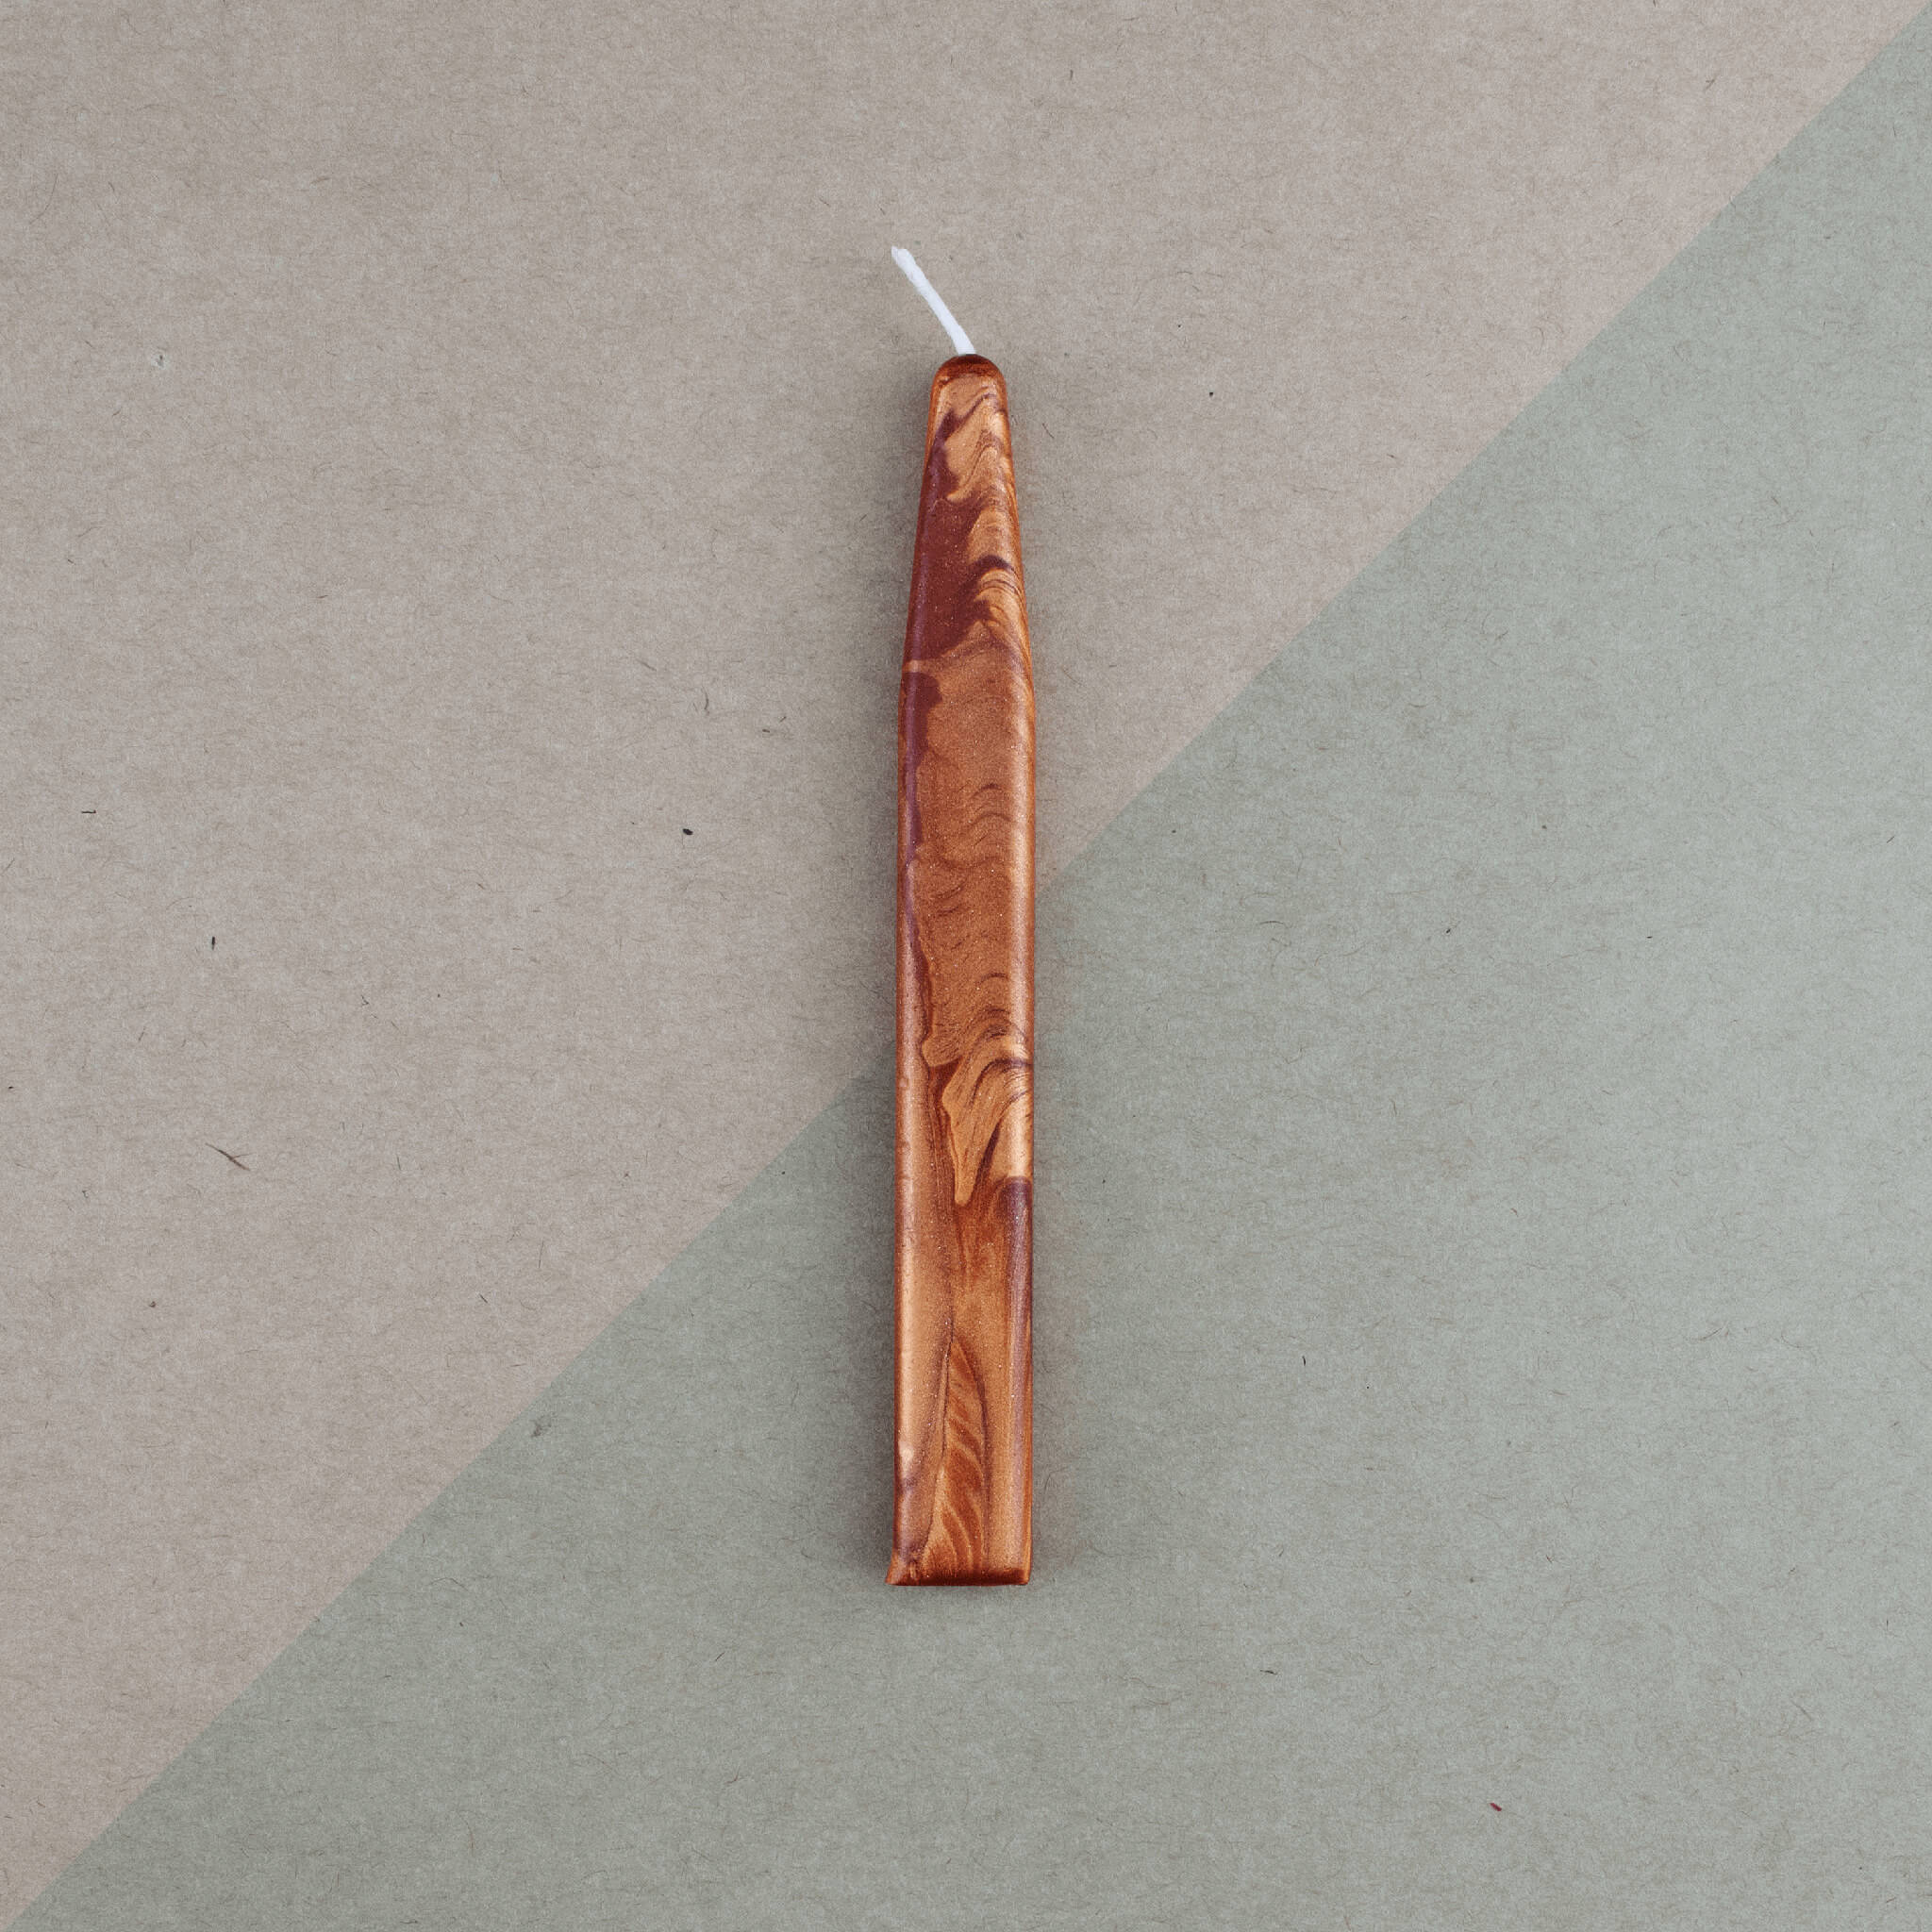 Kustom Haus Traditional Sealing Wax Stick with Wick - Copper